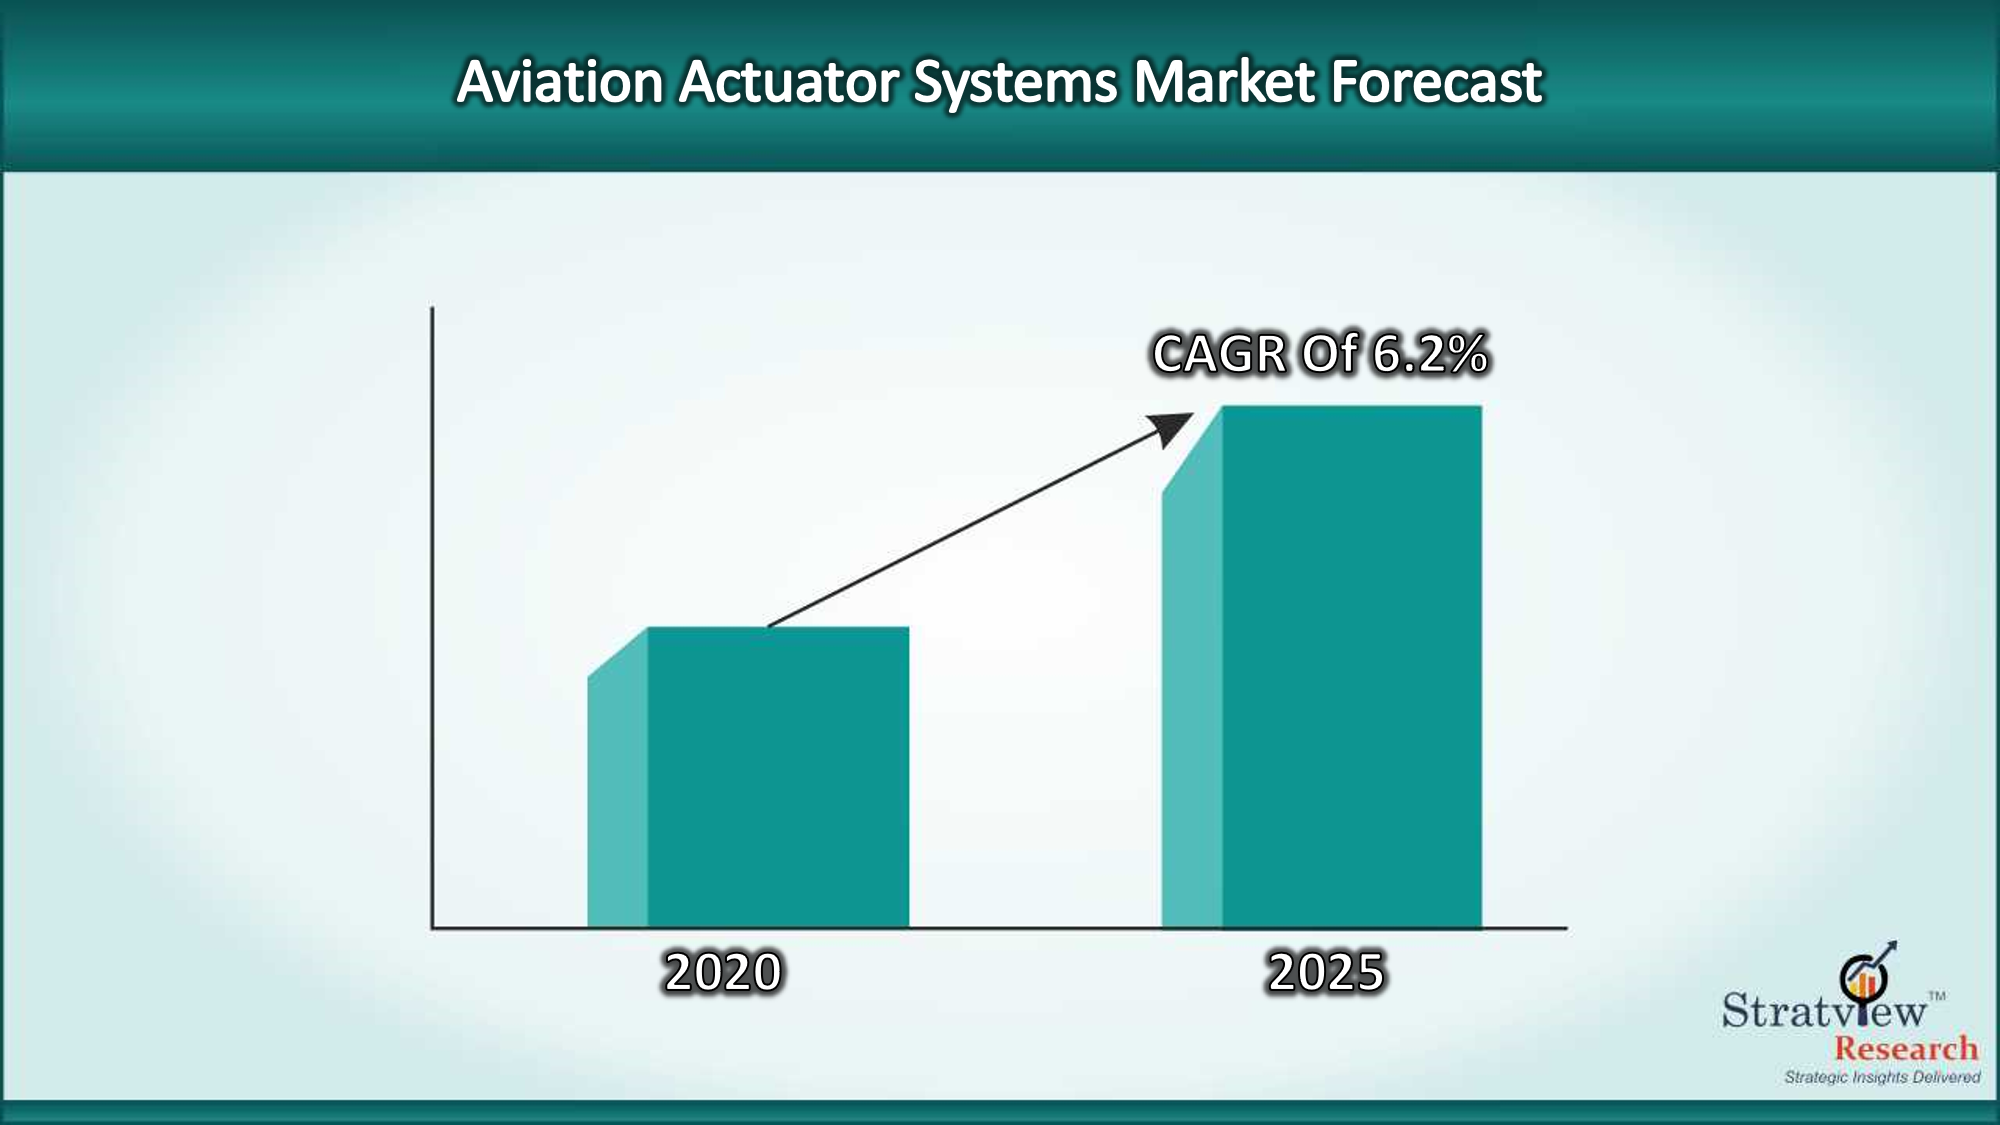 Aviation Actuator Systems Market